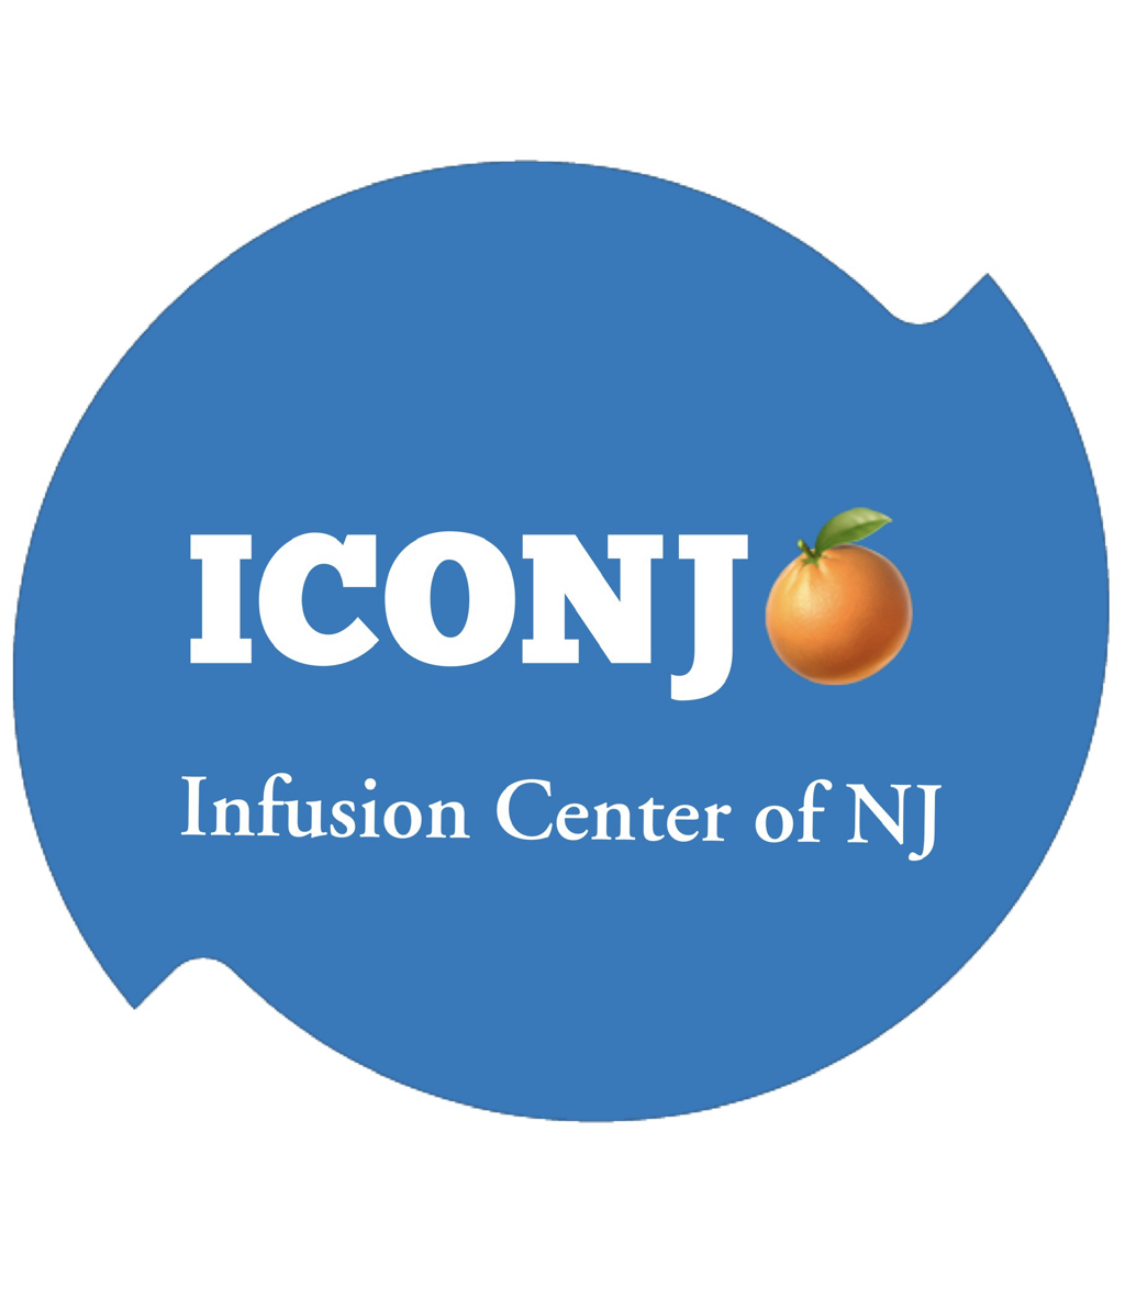 Infusion Center of NJ in Clifton